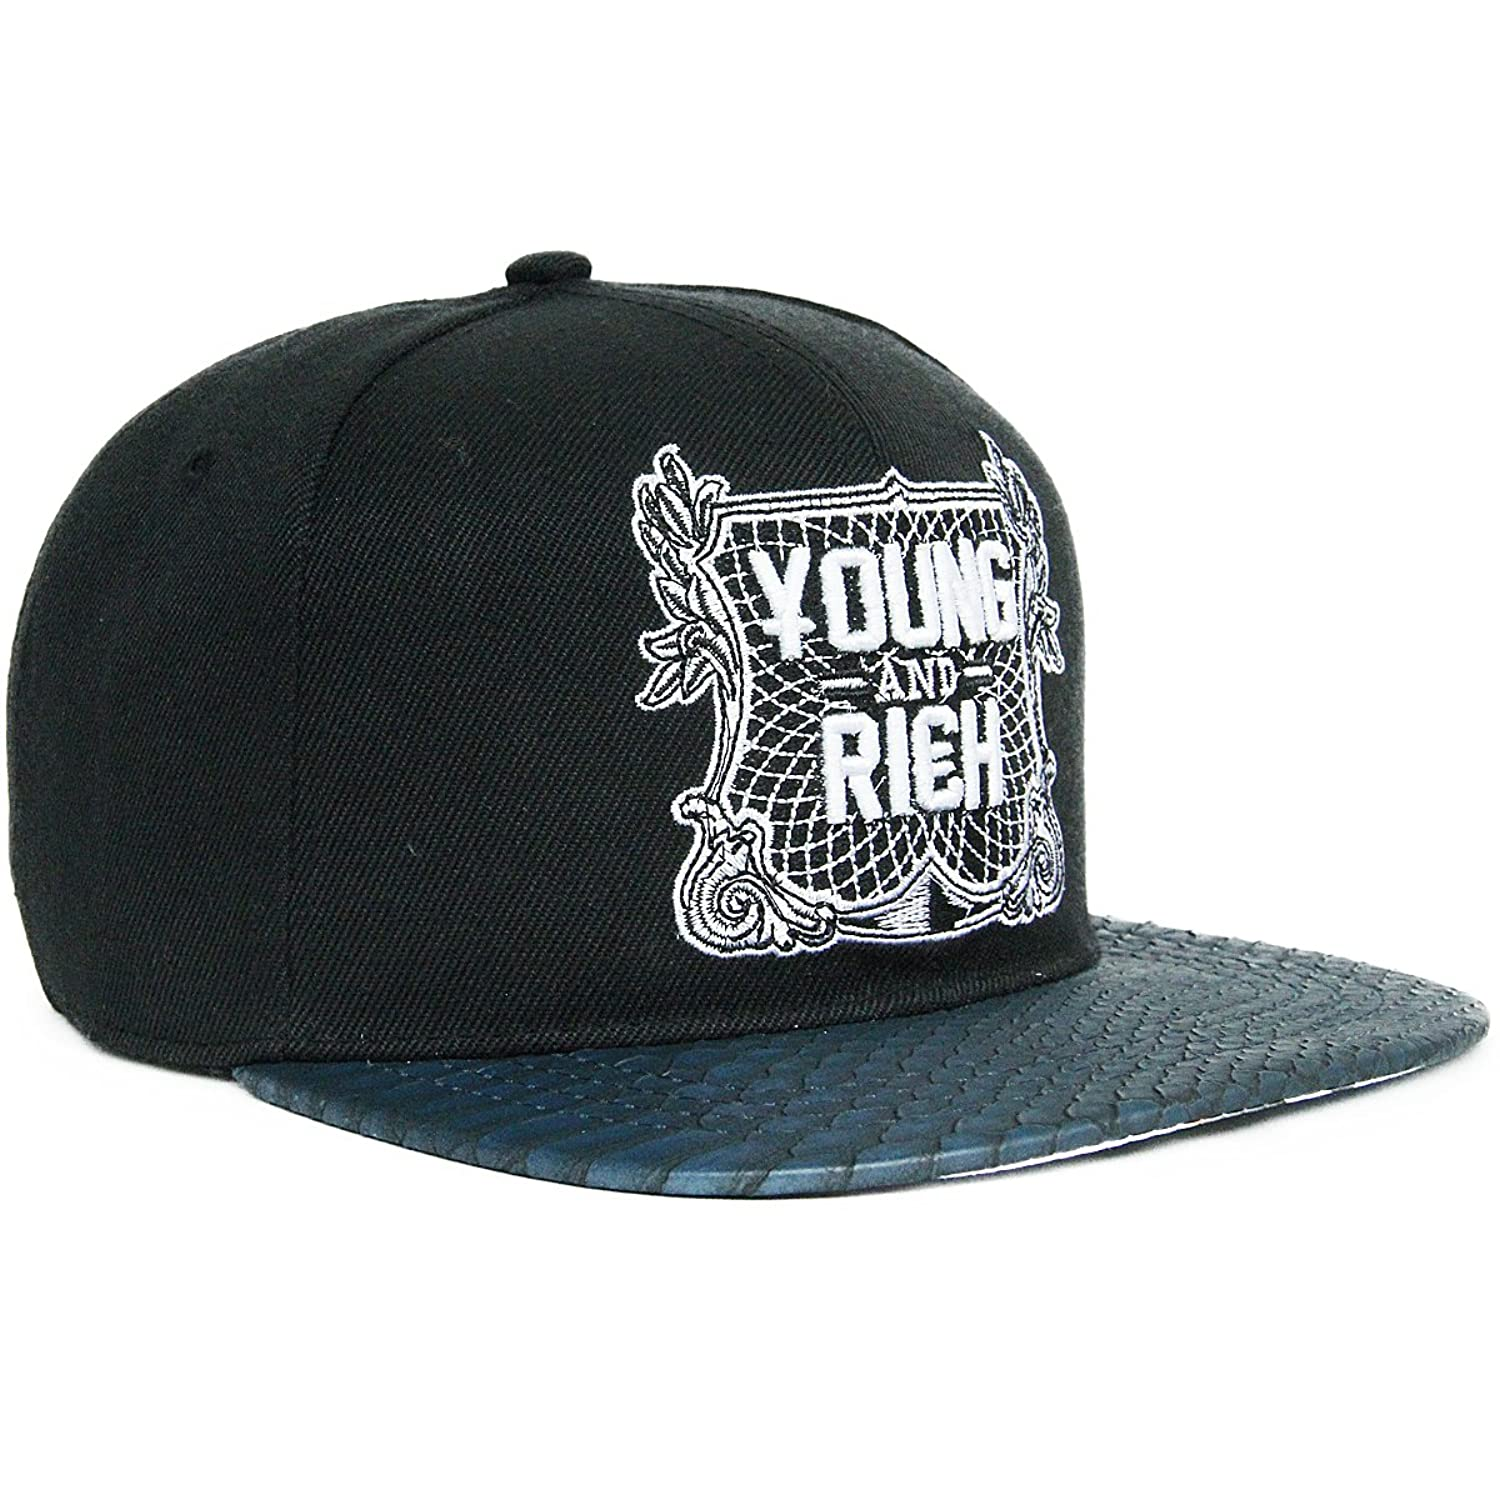 Rayna Fashion unisex casual flat bill visor hats hip hop caps embroidery patch